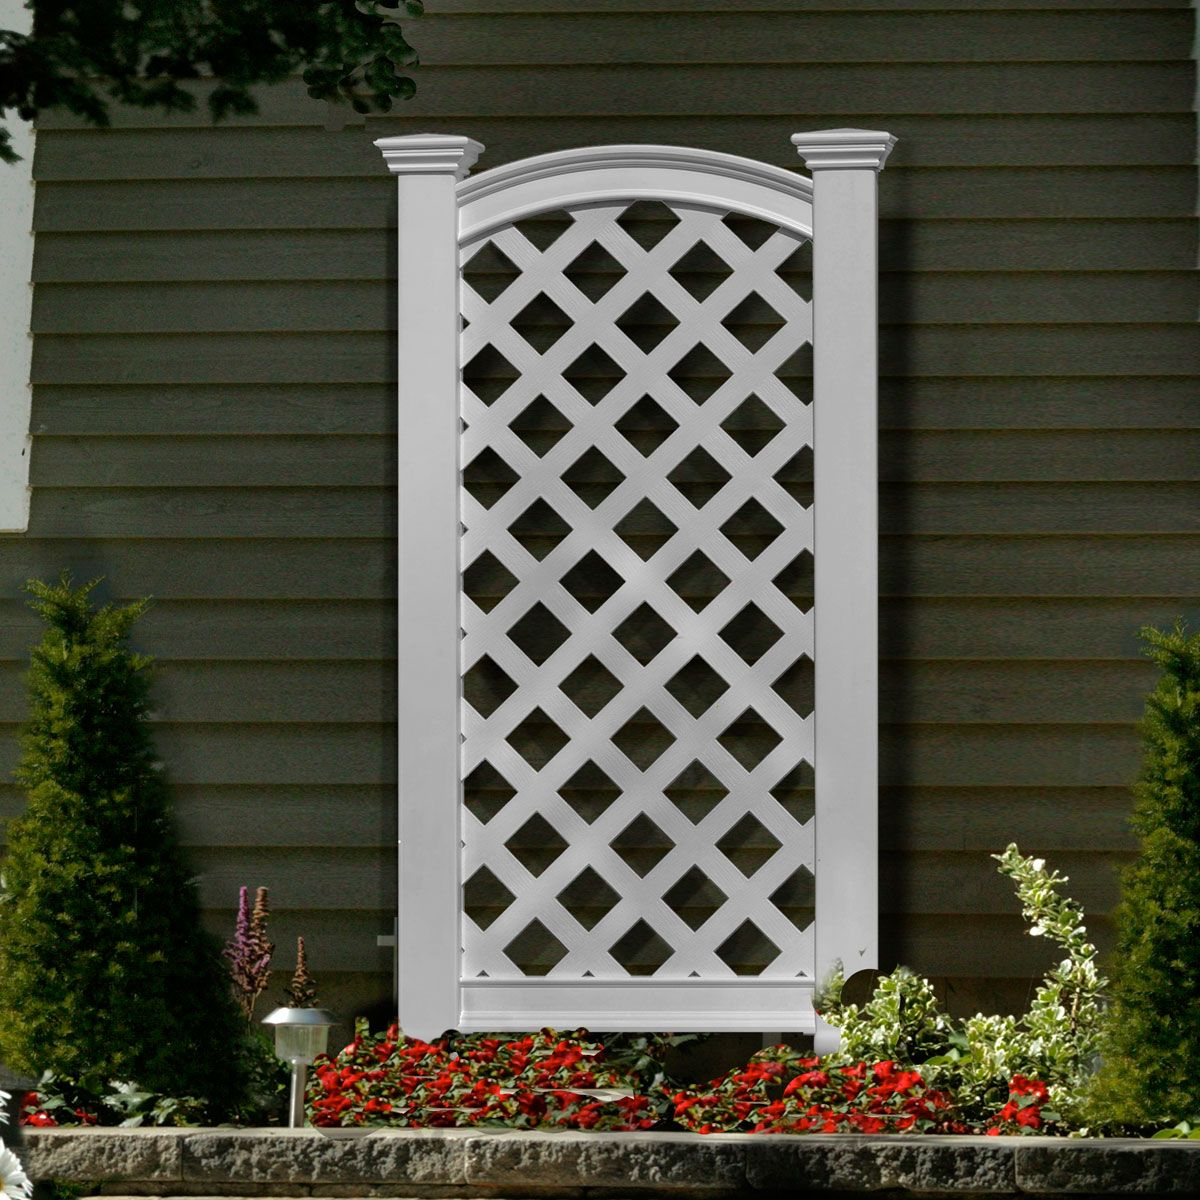 27 W X 56 1 4 H Luxembourg Privacy Screen White Vinyl Lattice Panels Pergola Fence Design